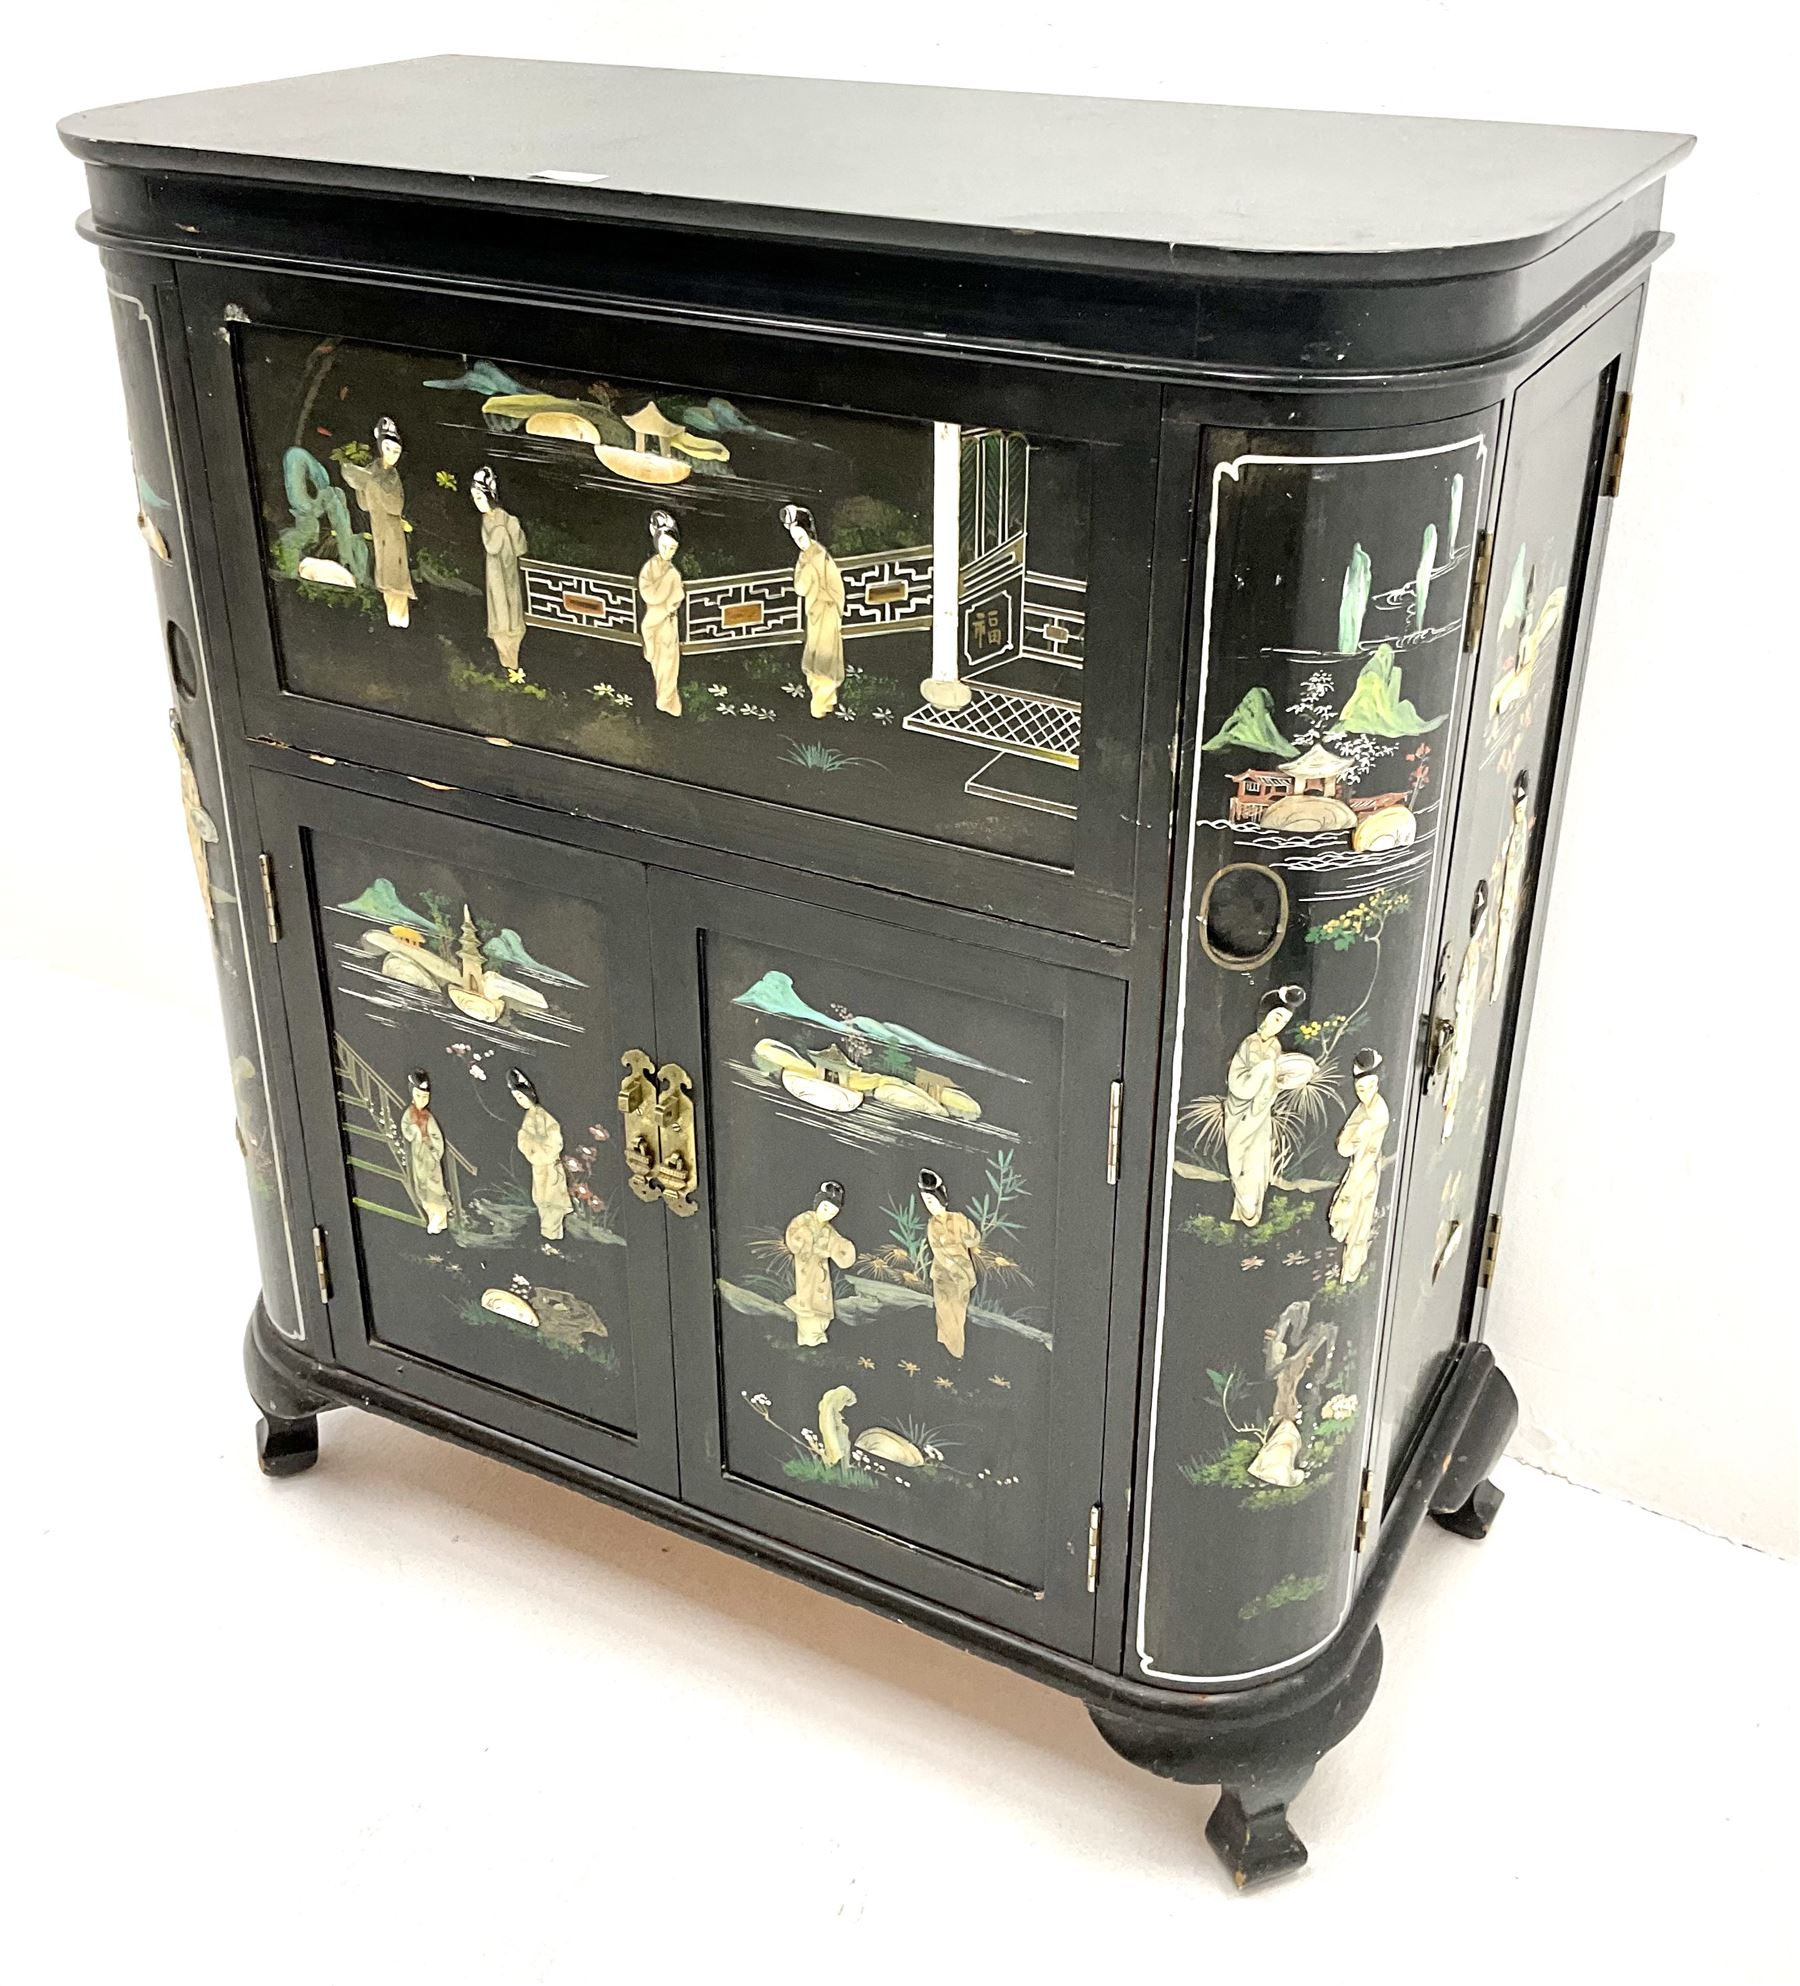 Hong Kong black lacquered cocktail cabinet with shibiyama style decoration of figures in a garden - Image 2 of 6